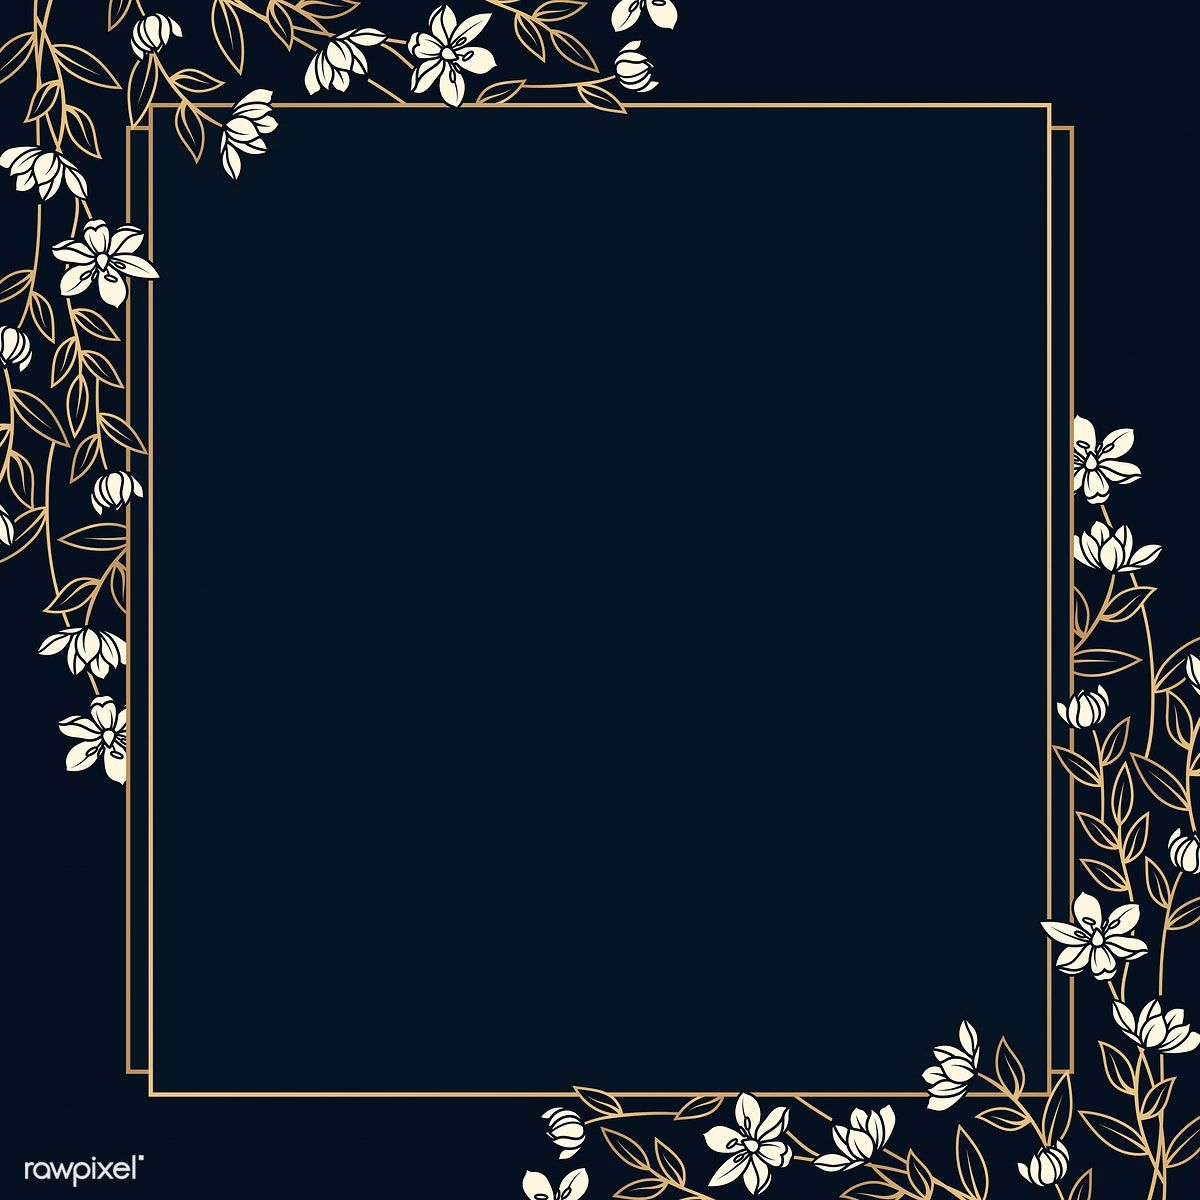 Download free vector of Empty floral frame design vector